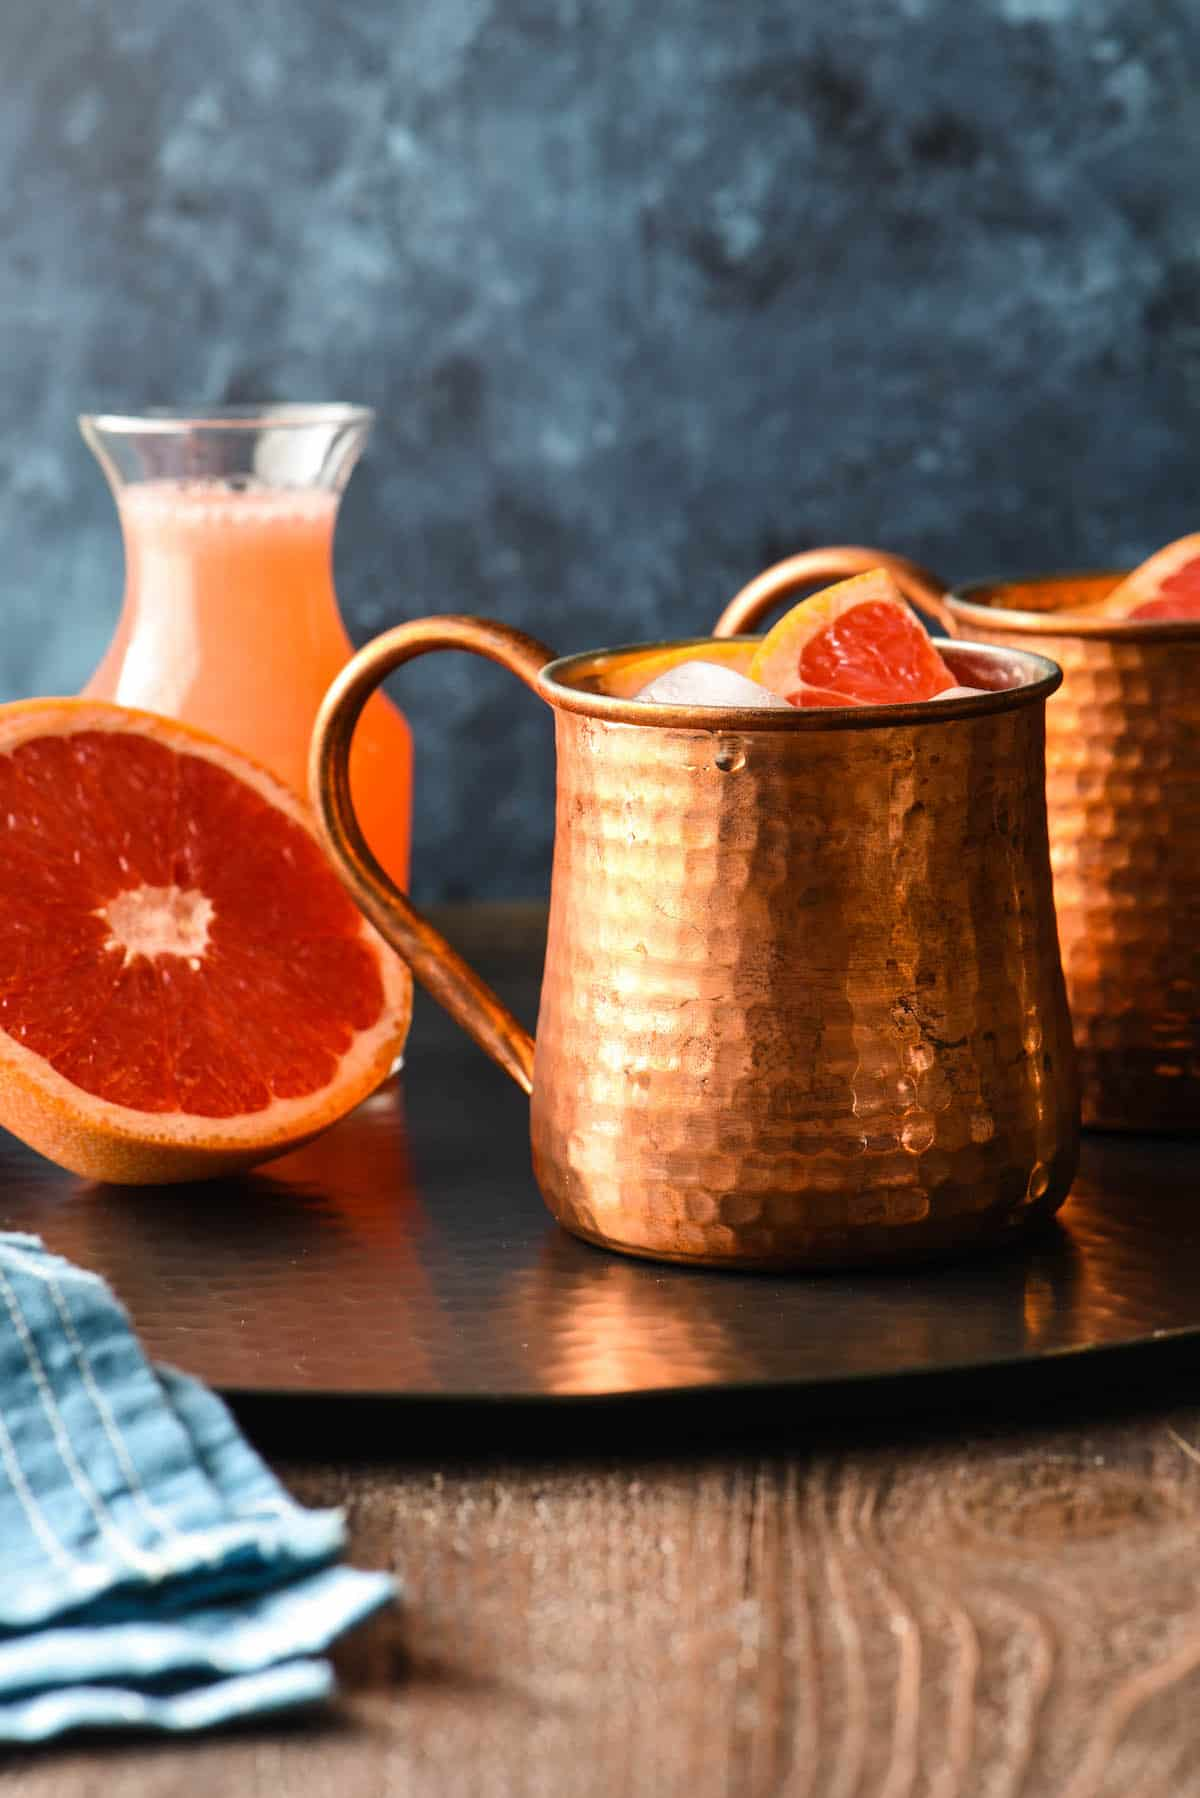 Grapefruit-Vanilla Moscow Mule - Bring some happy flavor to a cold day with an appetizer, cocktail, breakfast, salad, lunch or dinner celebrating juicy, sweet grapefruit! | foxeslovelemons.com